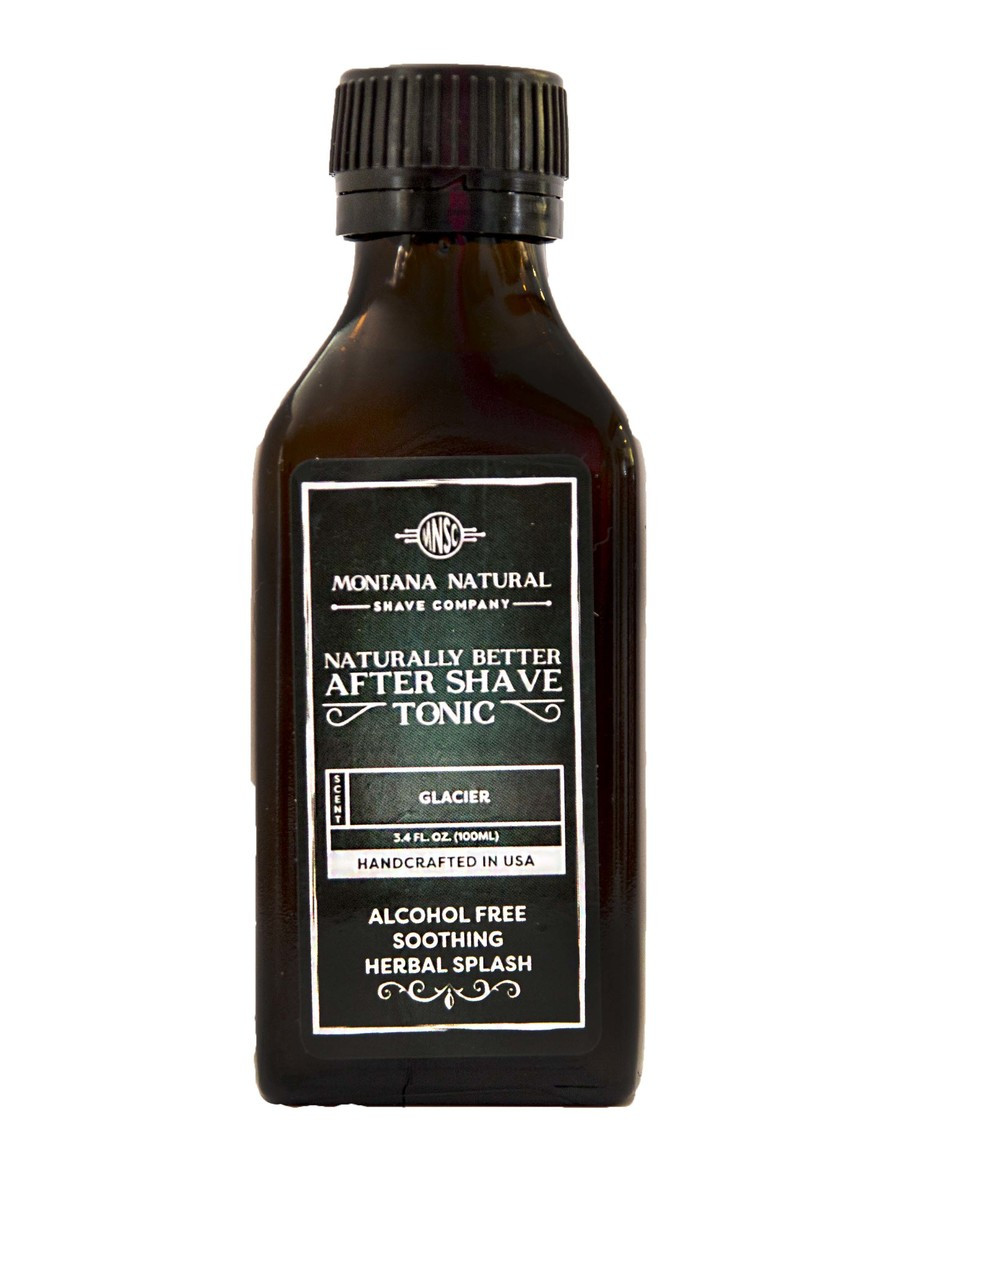 Glacier Old School Aftershave Tonic. Naturally Better  Alcohol Free Botanical Splash. Montana Natural Shave Company